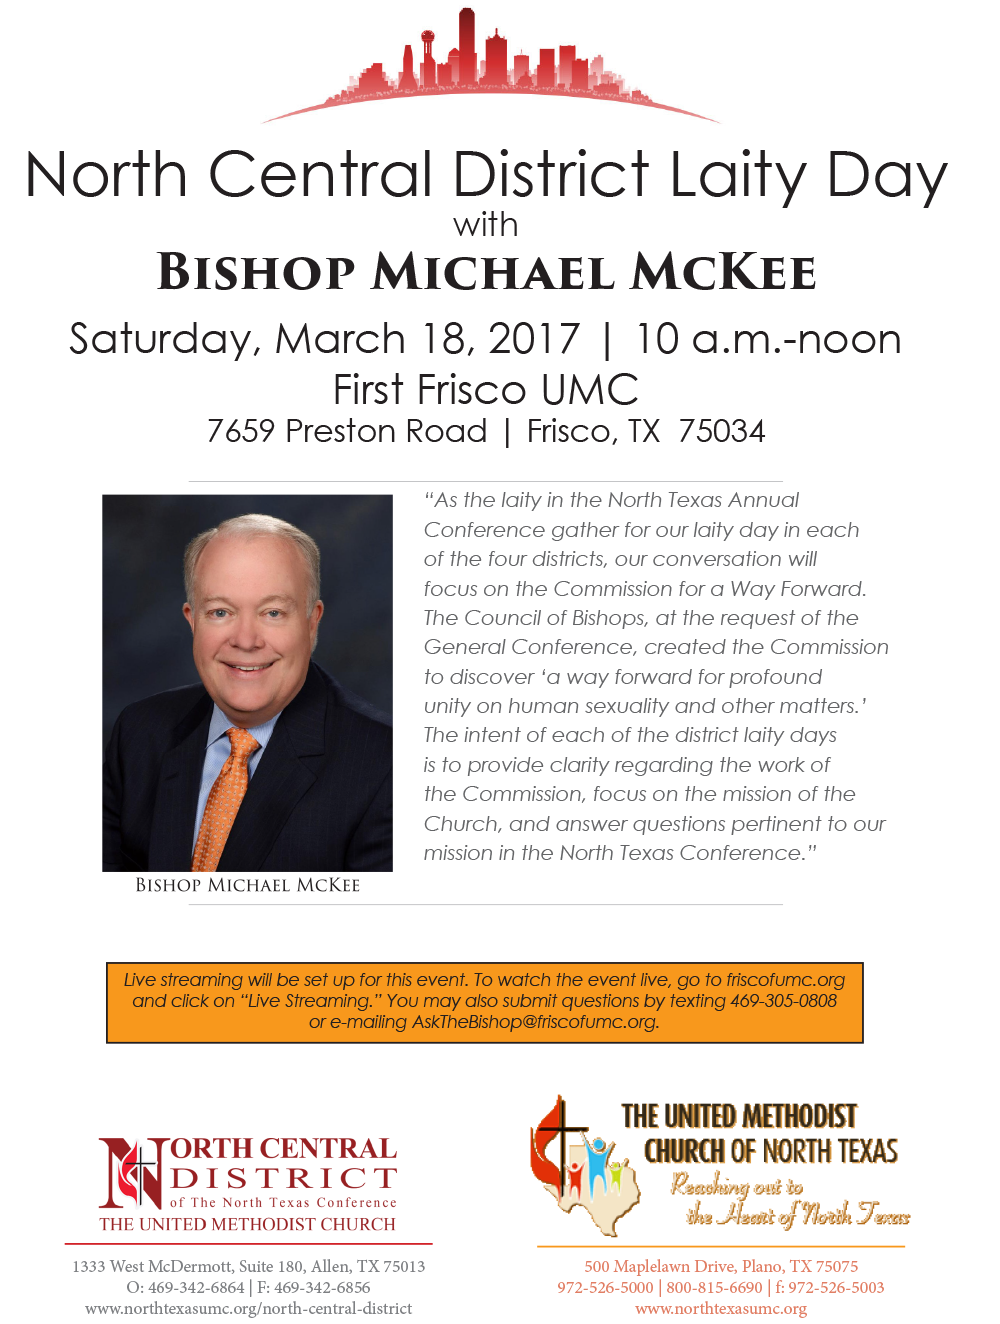 http://www.northtexasumc.org/2017/01/north-central-district-laity-day-with-bishop-mckee-march-18-2017/